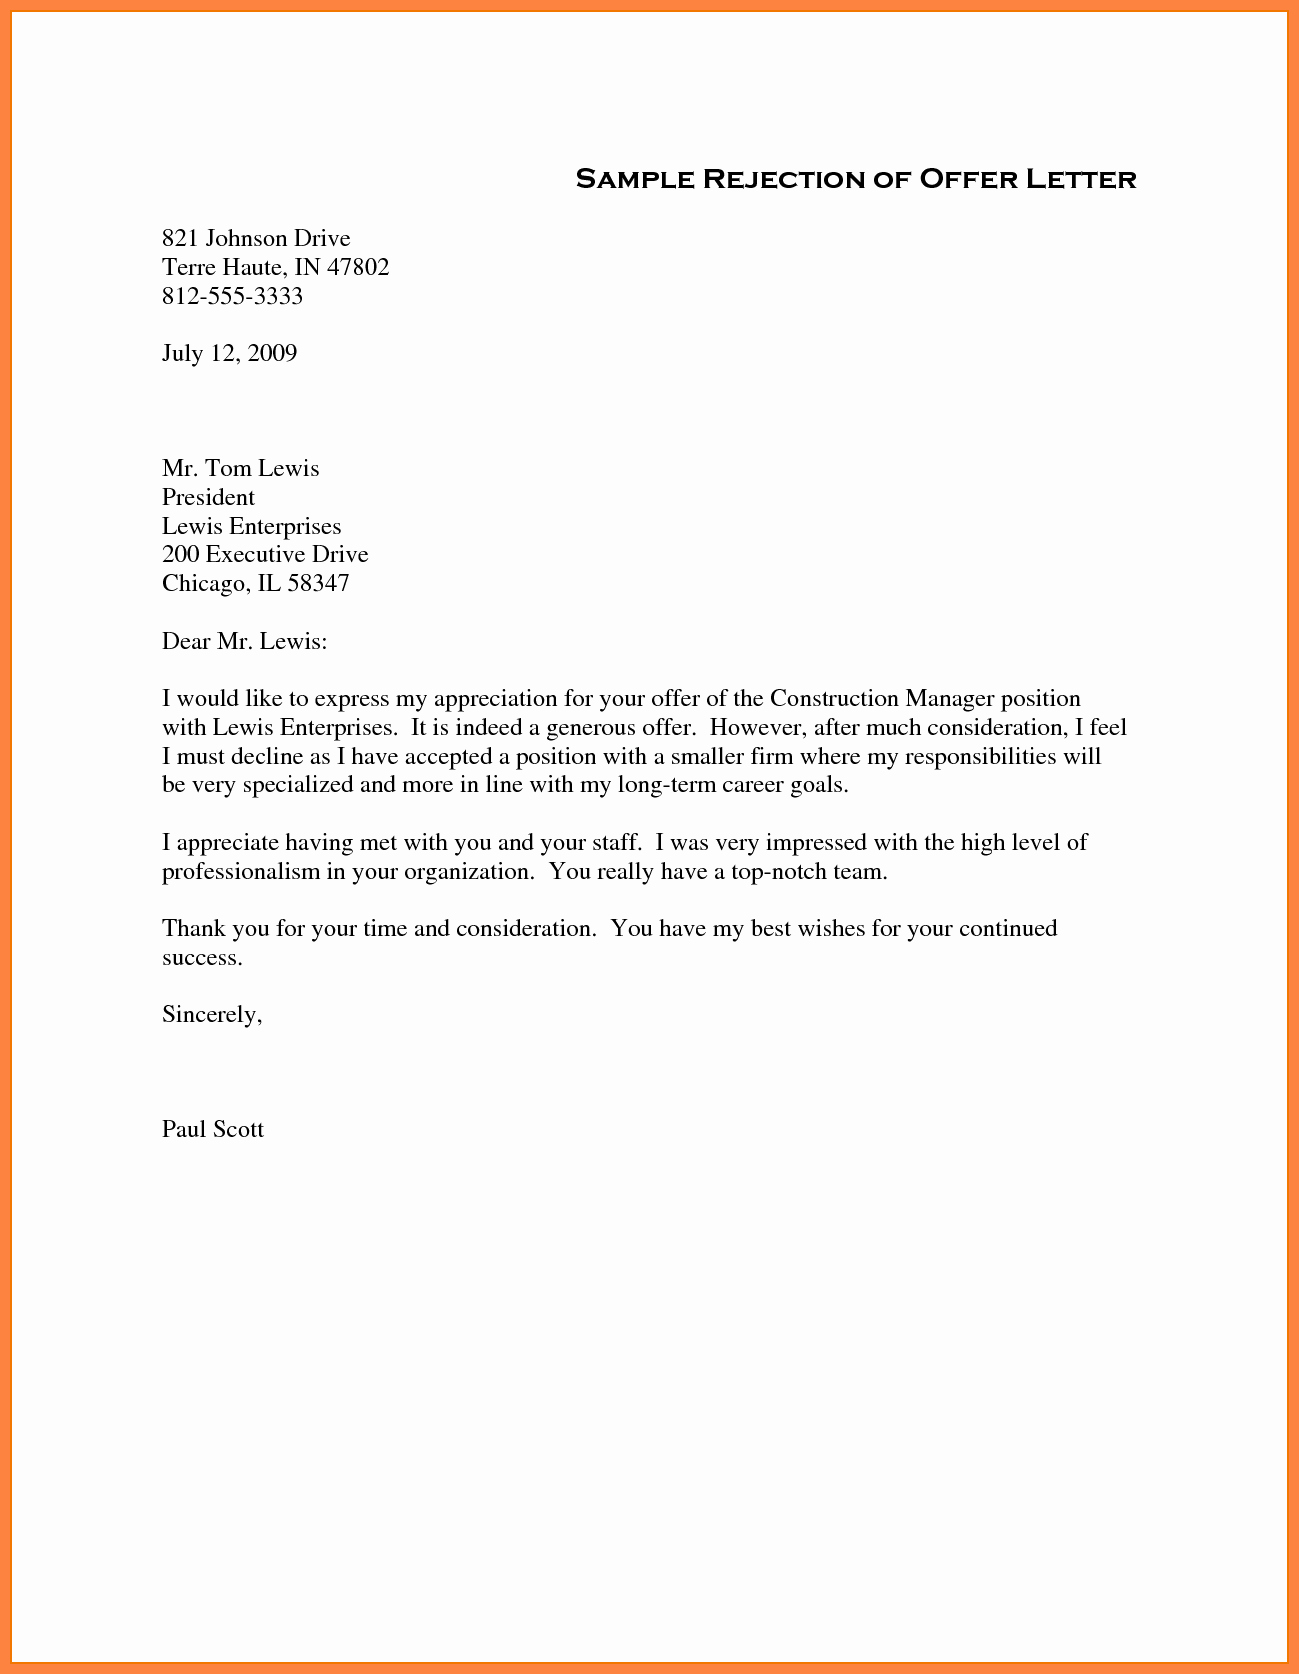 Sample Of Offer Letter Lovely 5 Job Offer Rejection Letter